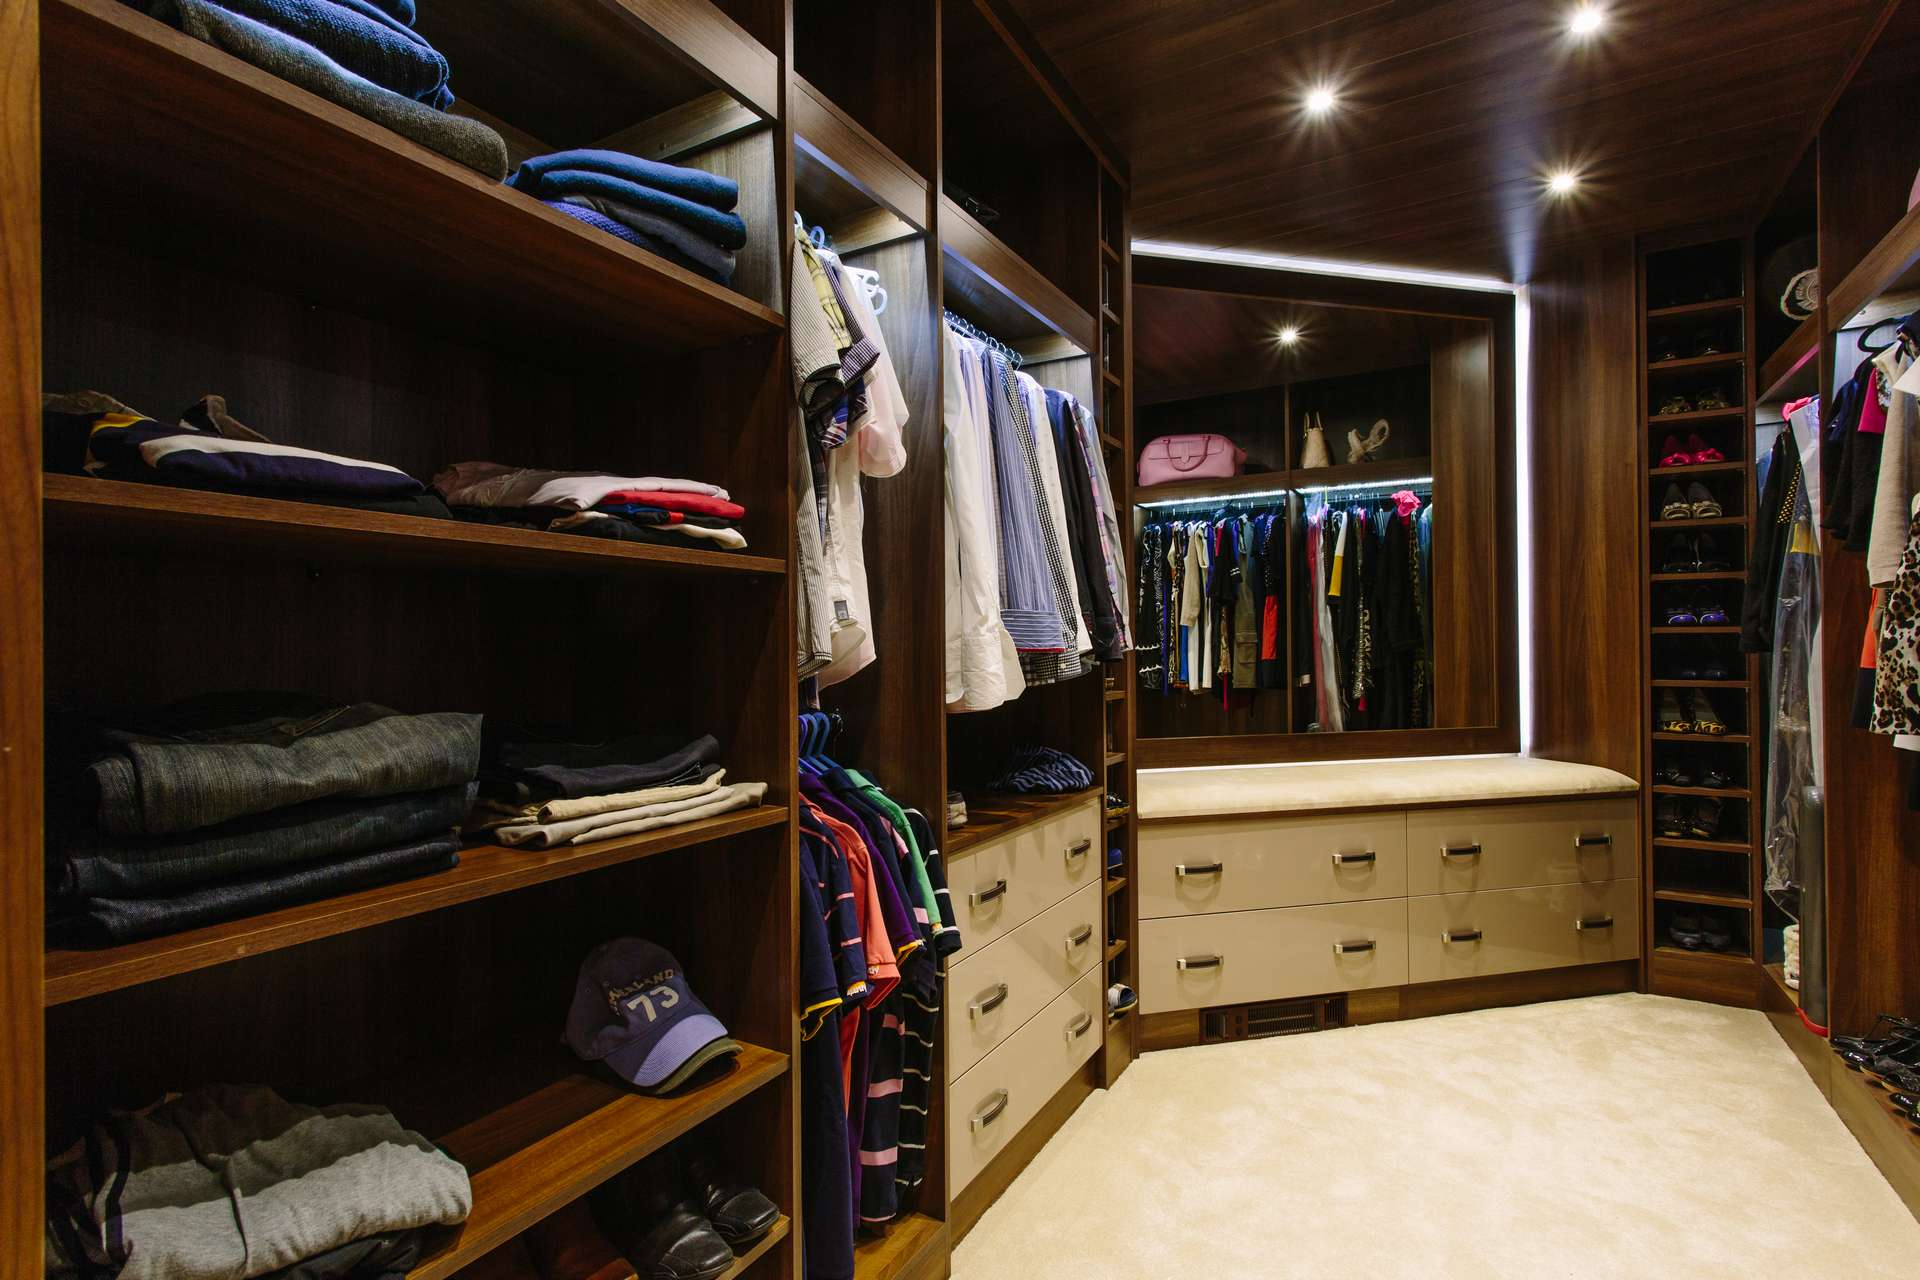 Made to measure walk in wardrobe space